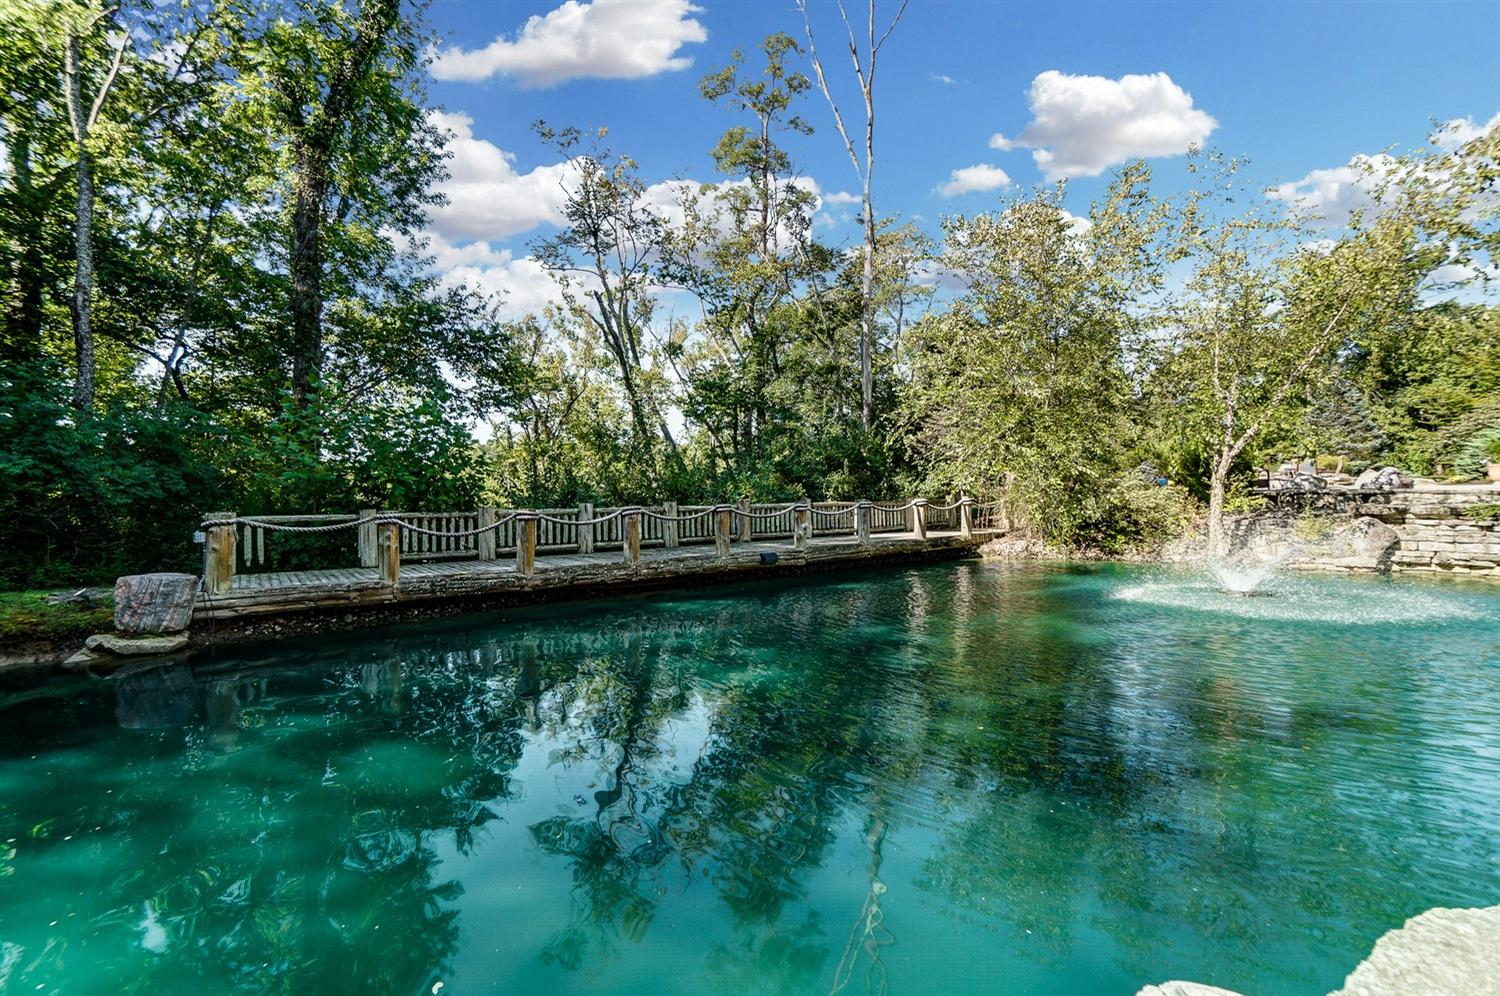 There is a stocked pond with a wood bridge/dock that connects the pool deck area to a private wooded retreat complete with a firepit.